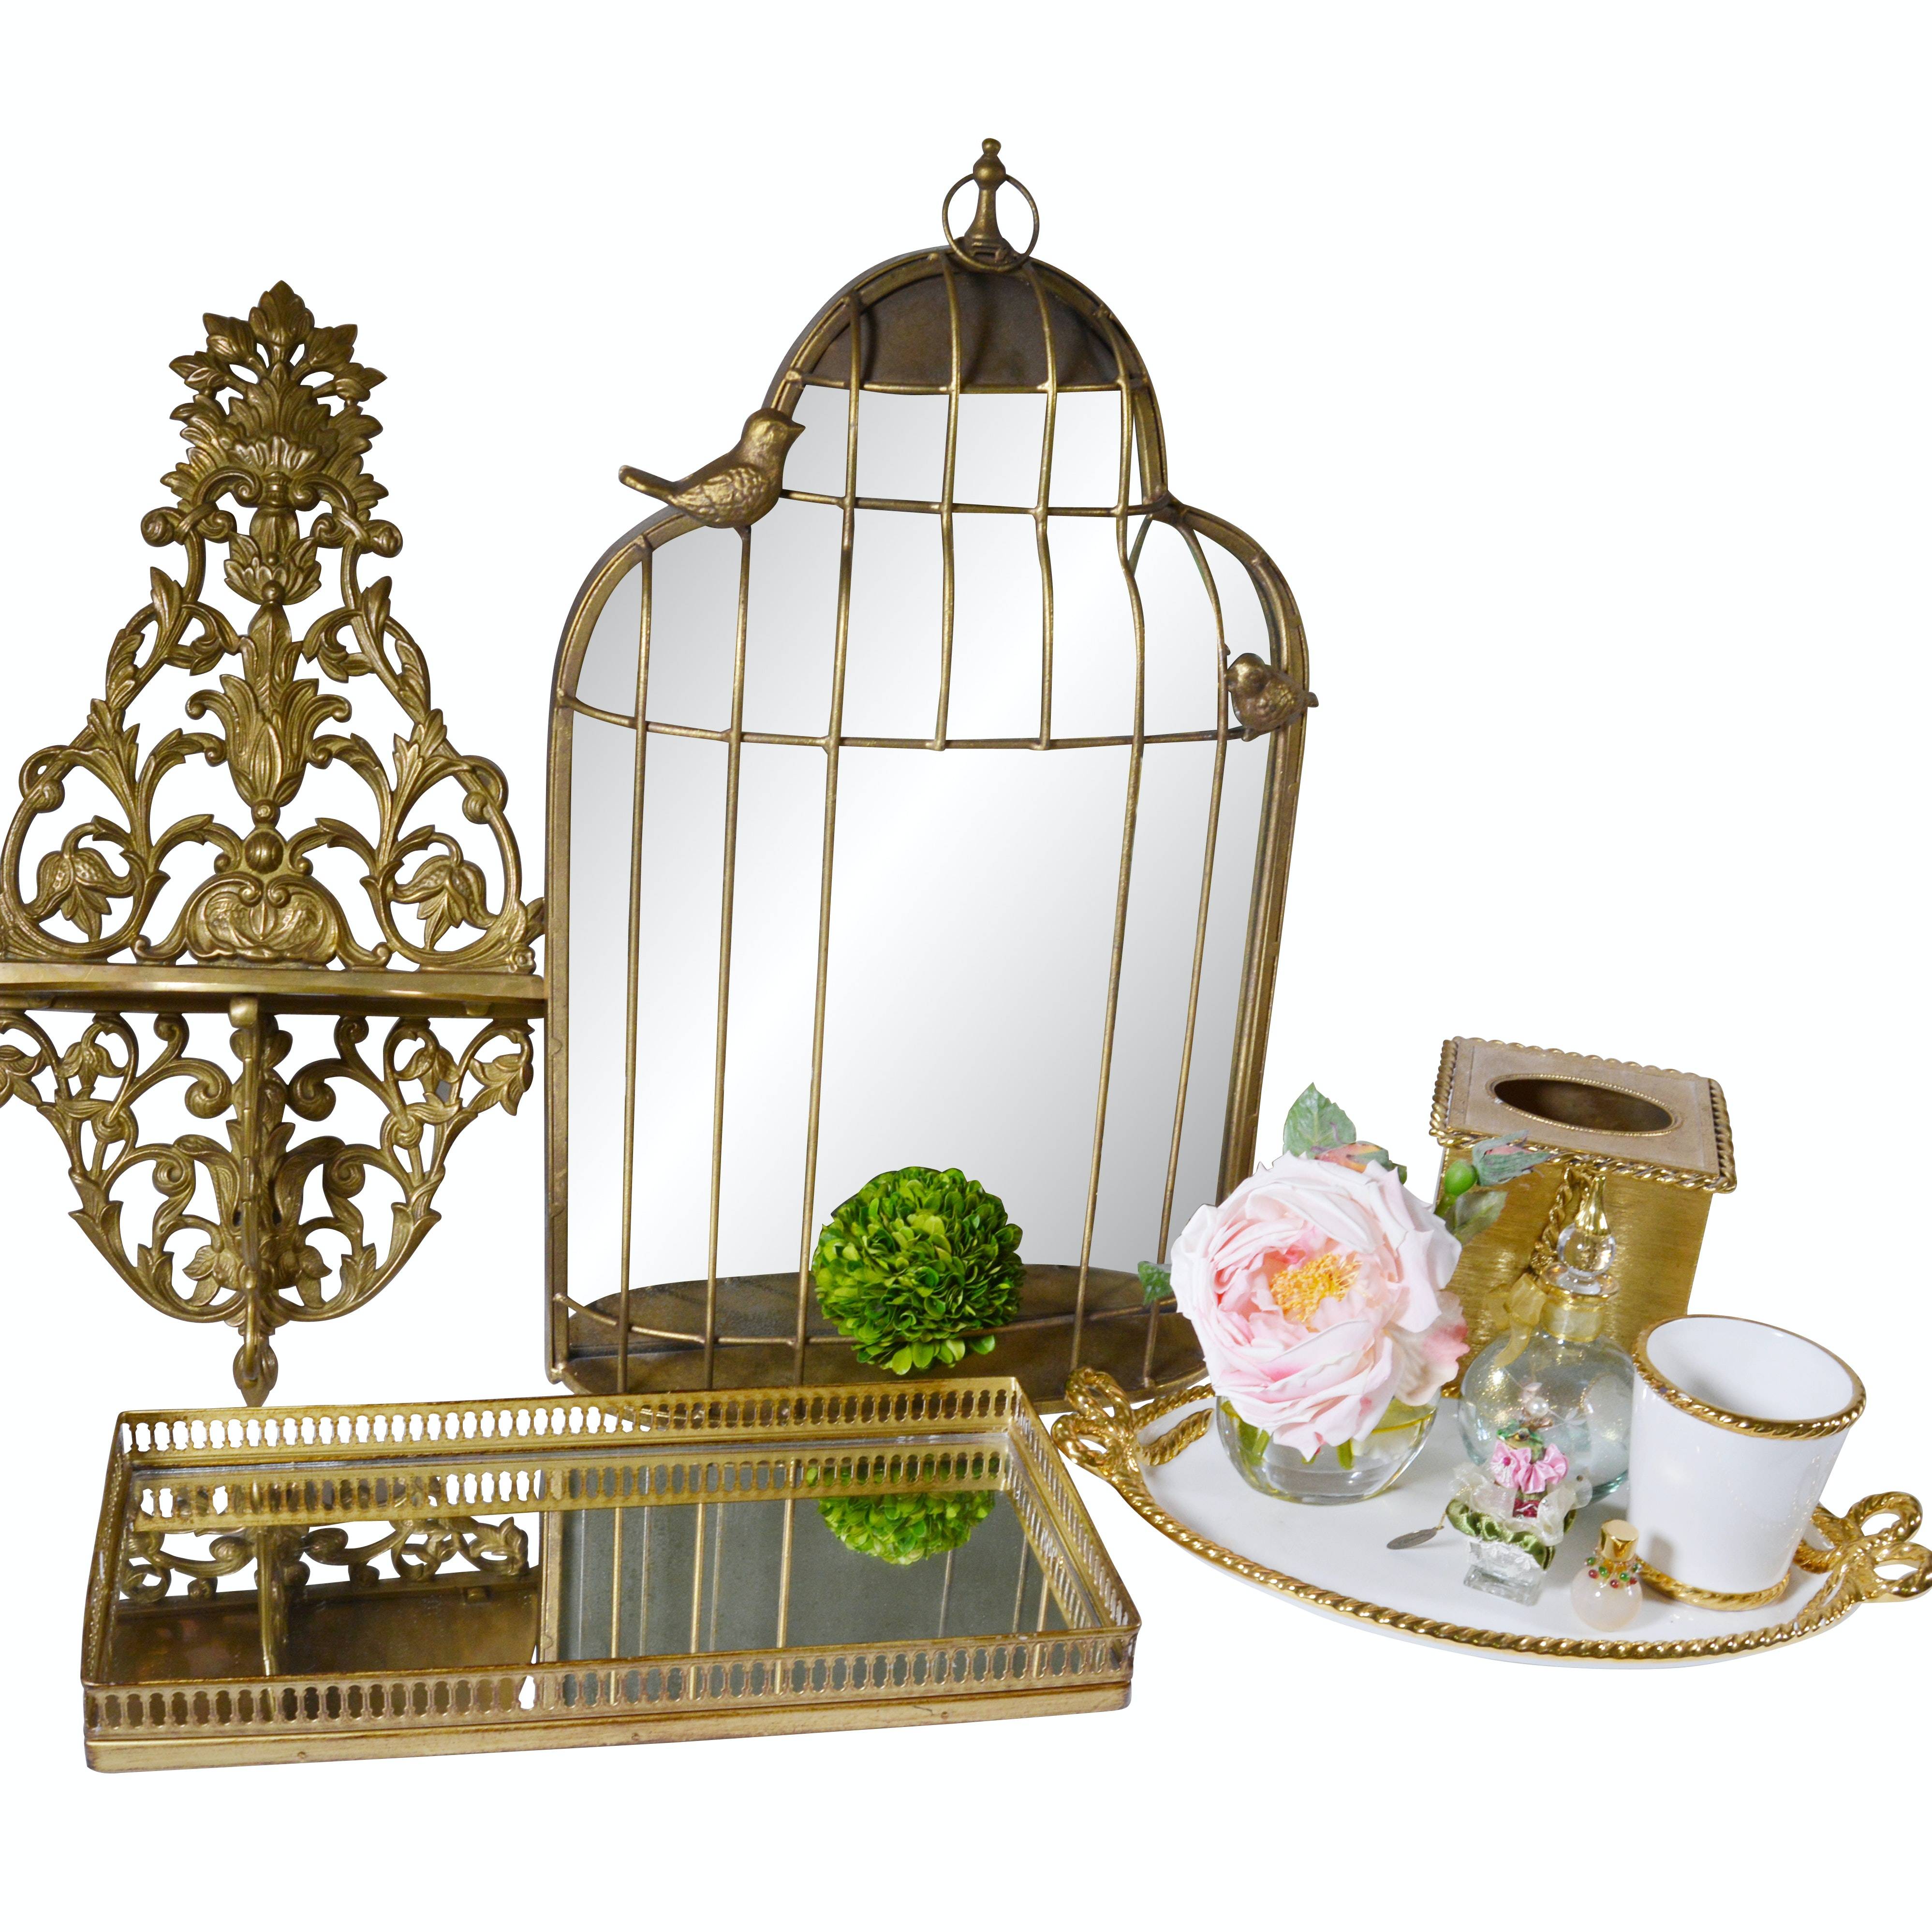 Brass Vanity Tray, Wall Birdcage and Other Decor